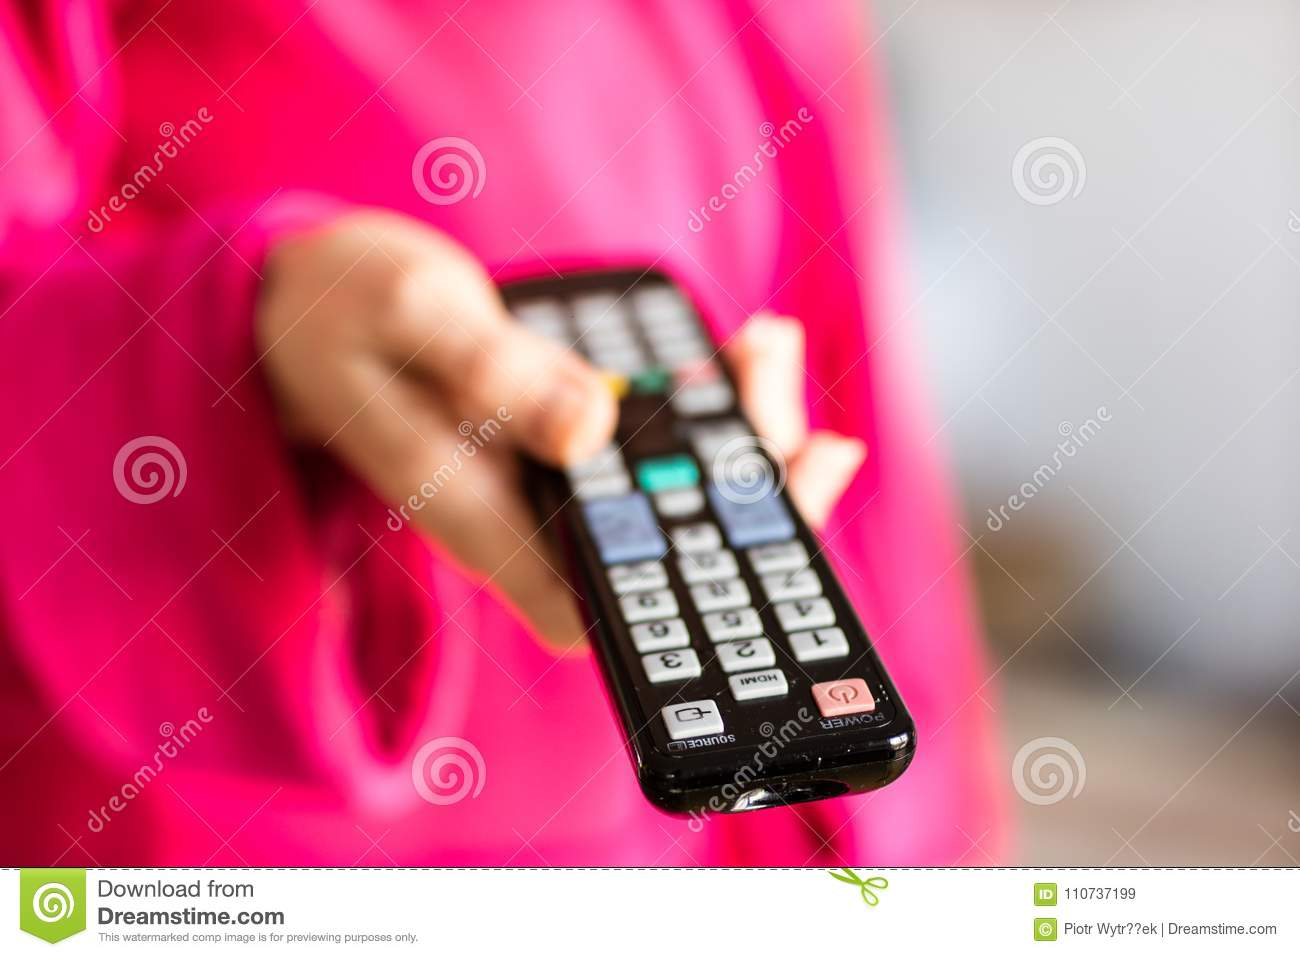 TV remote control held in women& x27;s hands. Switching channels on t